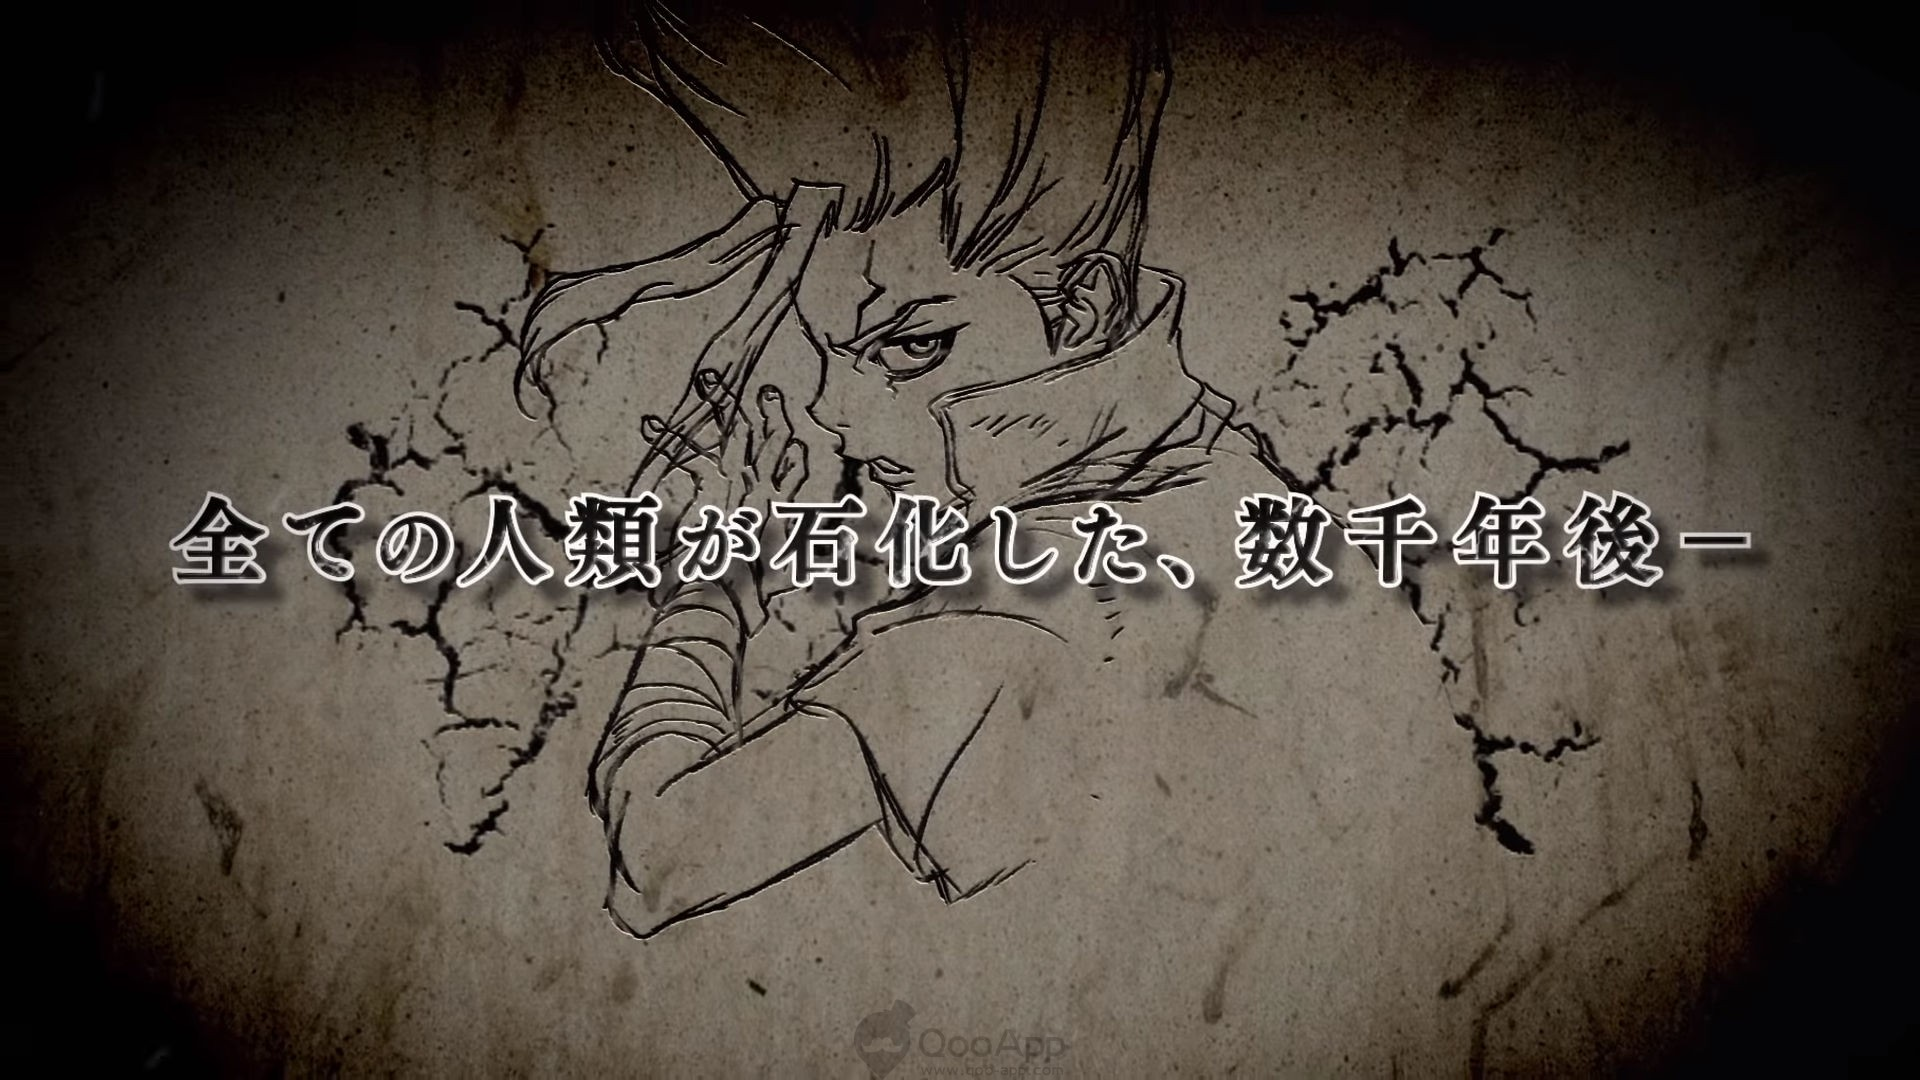 Qoo News Dr Stone Anime Adaptation Teaser Trailer Released Qooapp